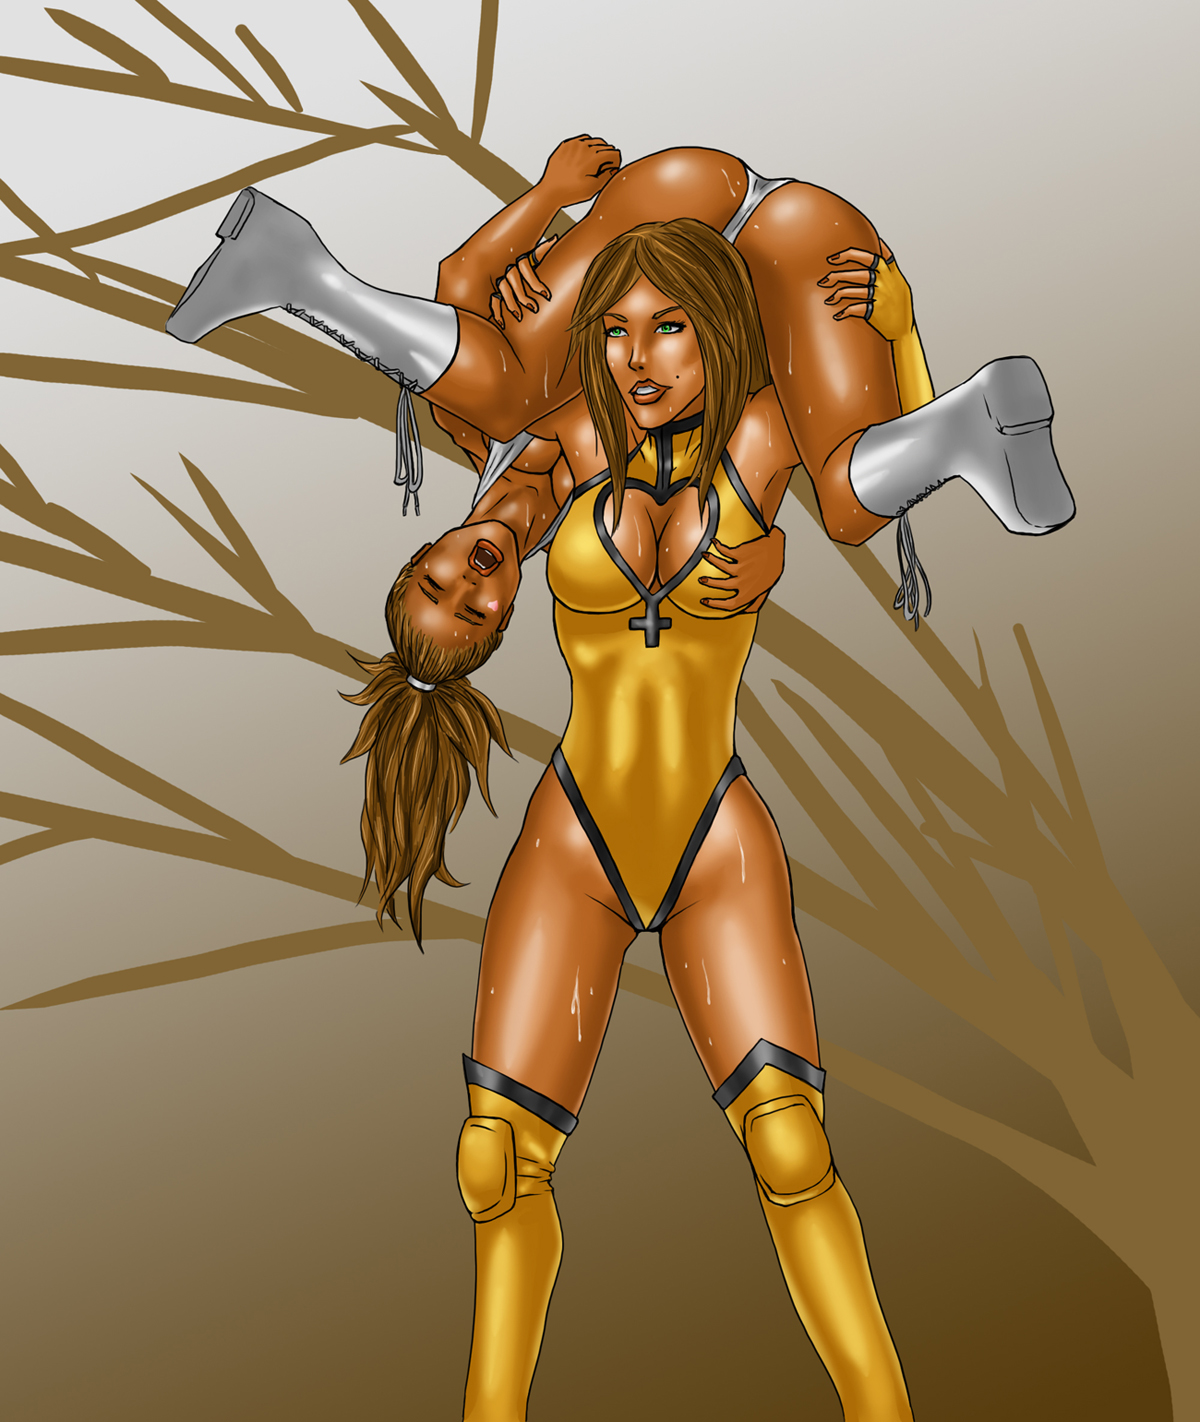 Midas Buster by gwproject